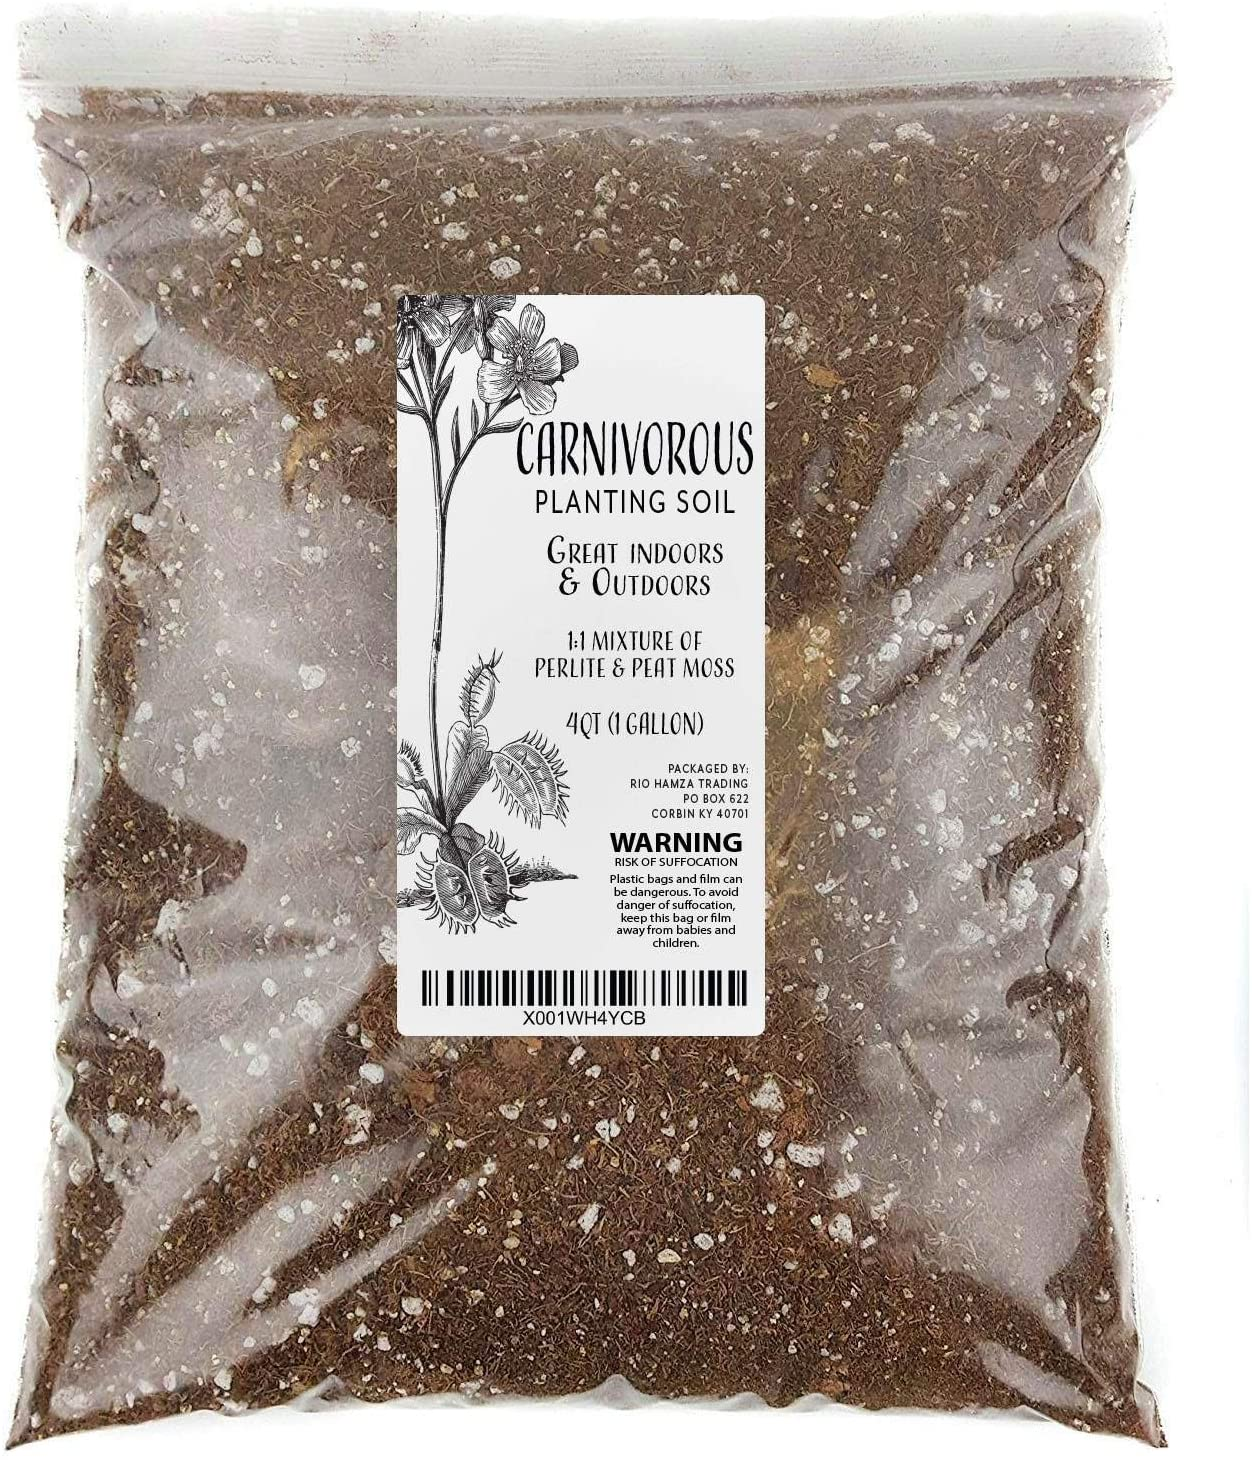 Carnivorous Plant Soil Mix One Gallon Ingre Special sale item Natural XL Bag All Max 74% OFF